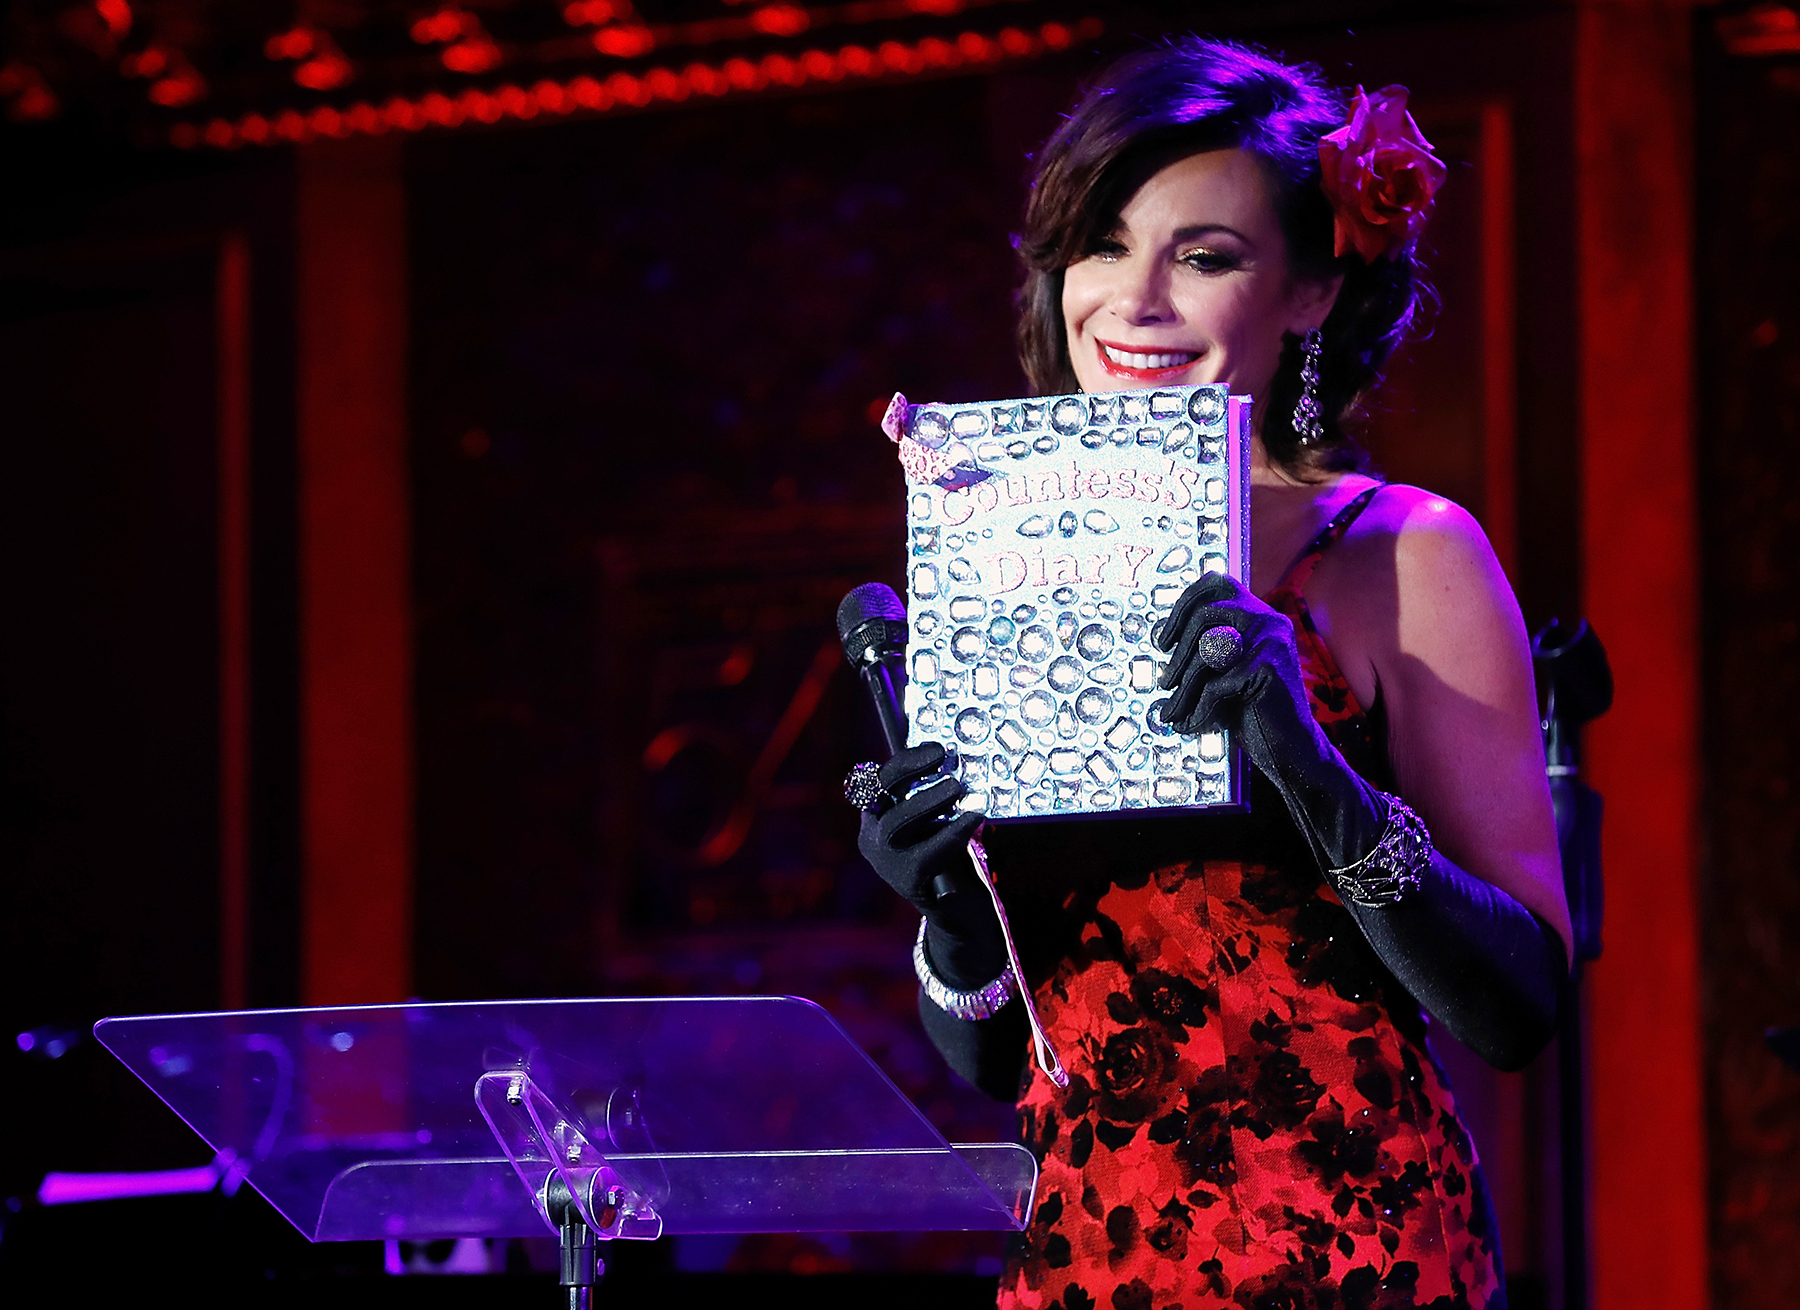 Luann de Lesseps Pokes Fun at Arrest and Rehab Stint During Cabaret Show